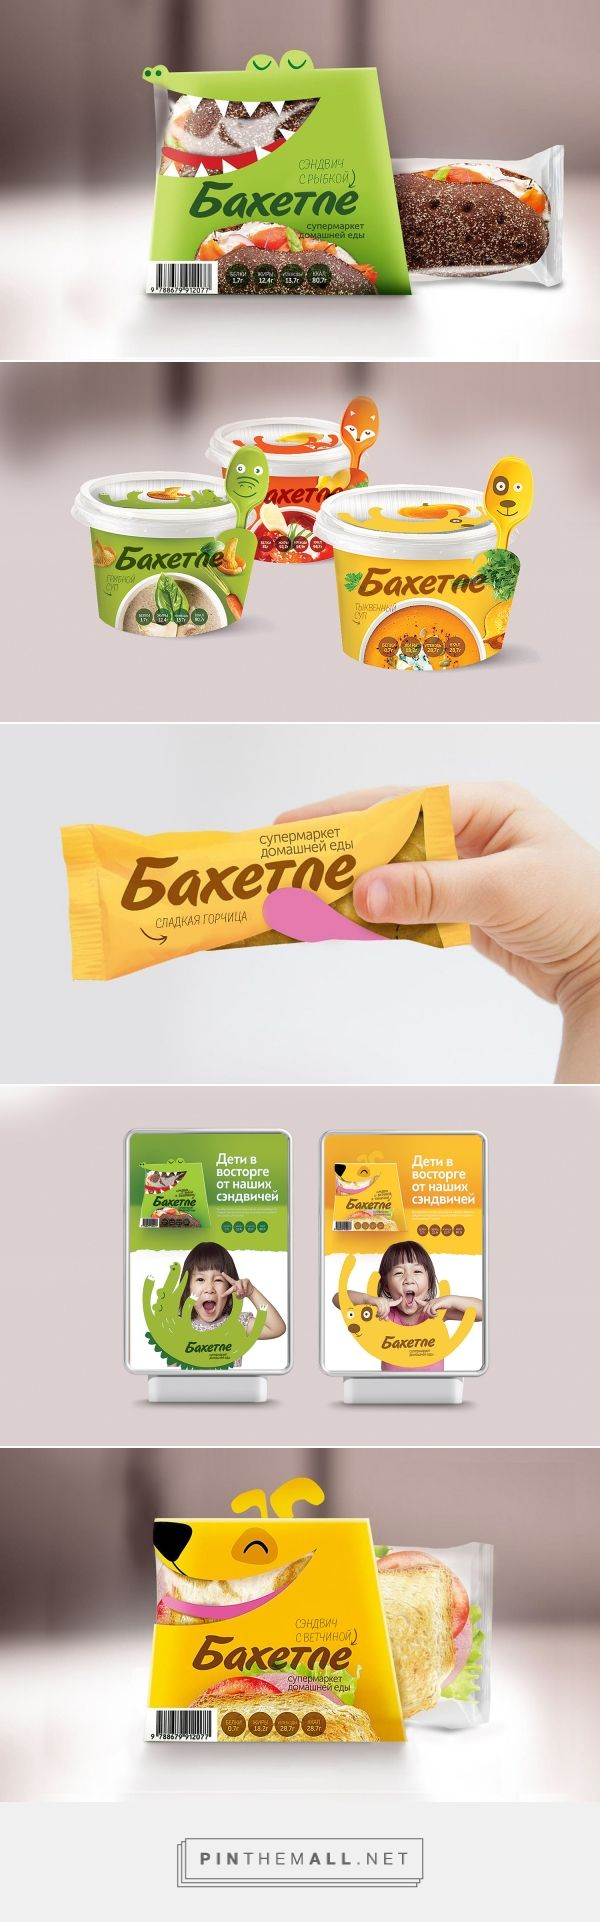 Bahetle takeaway concept packaging design by dasha romanova russia http